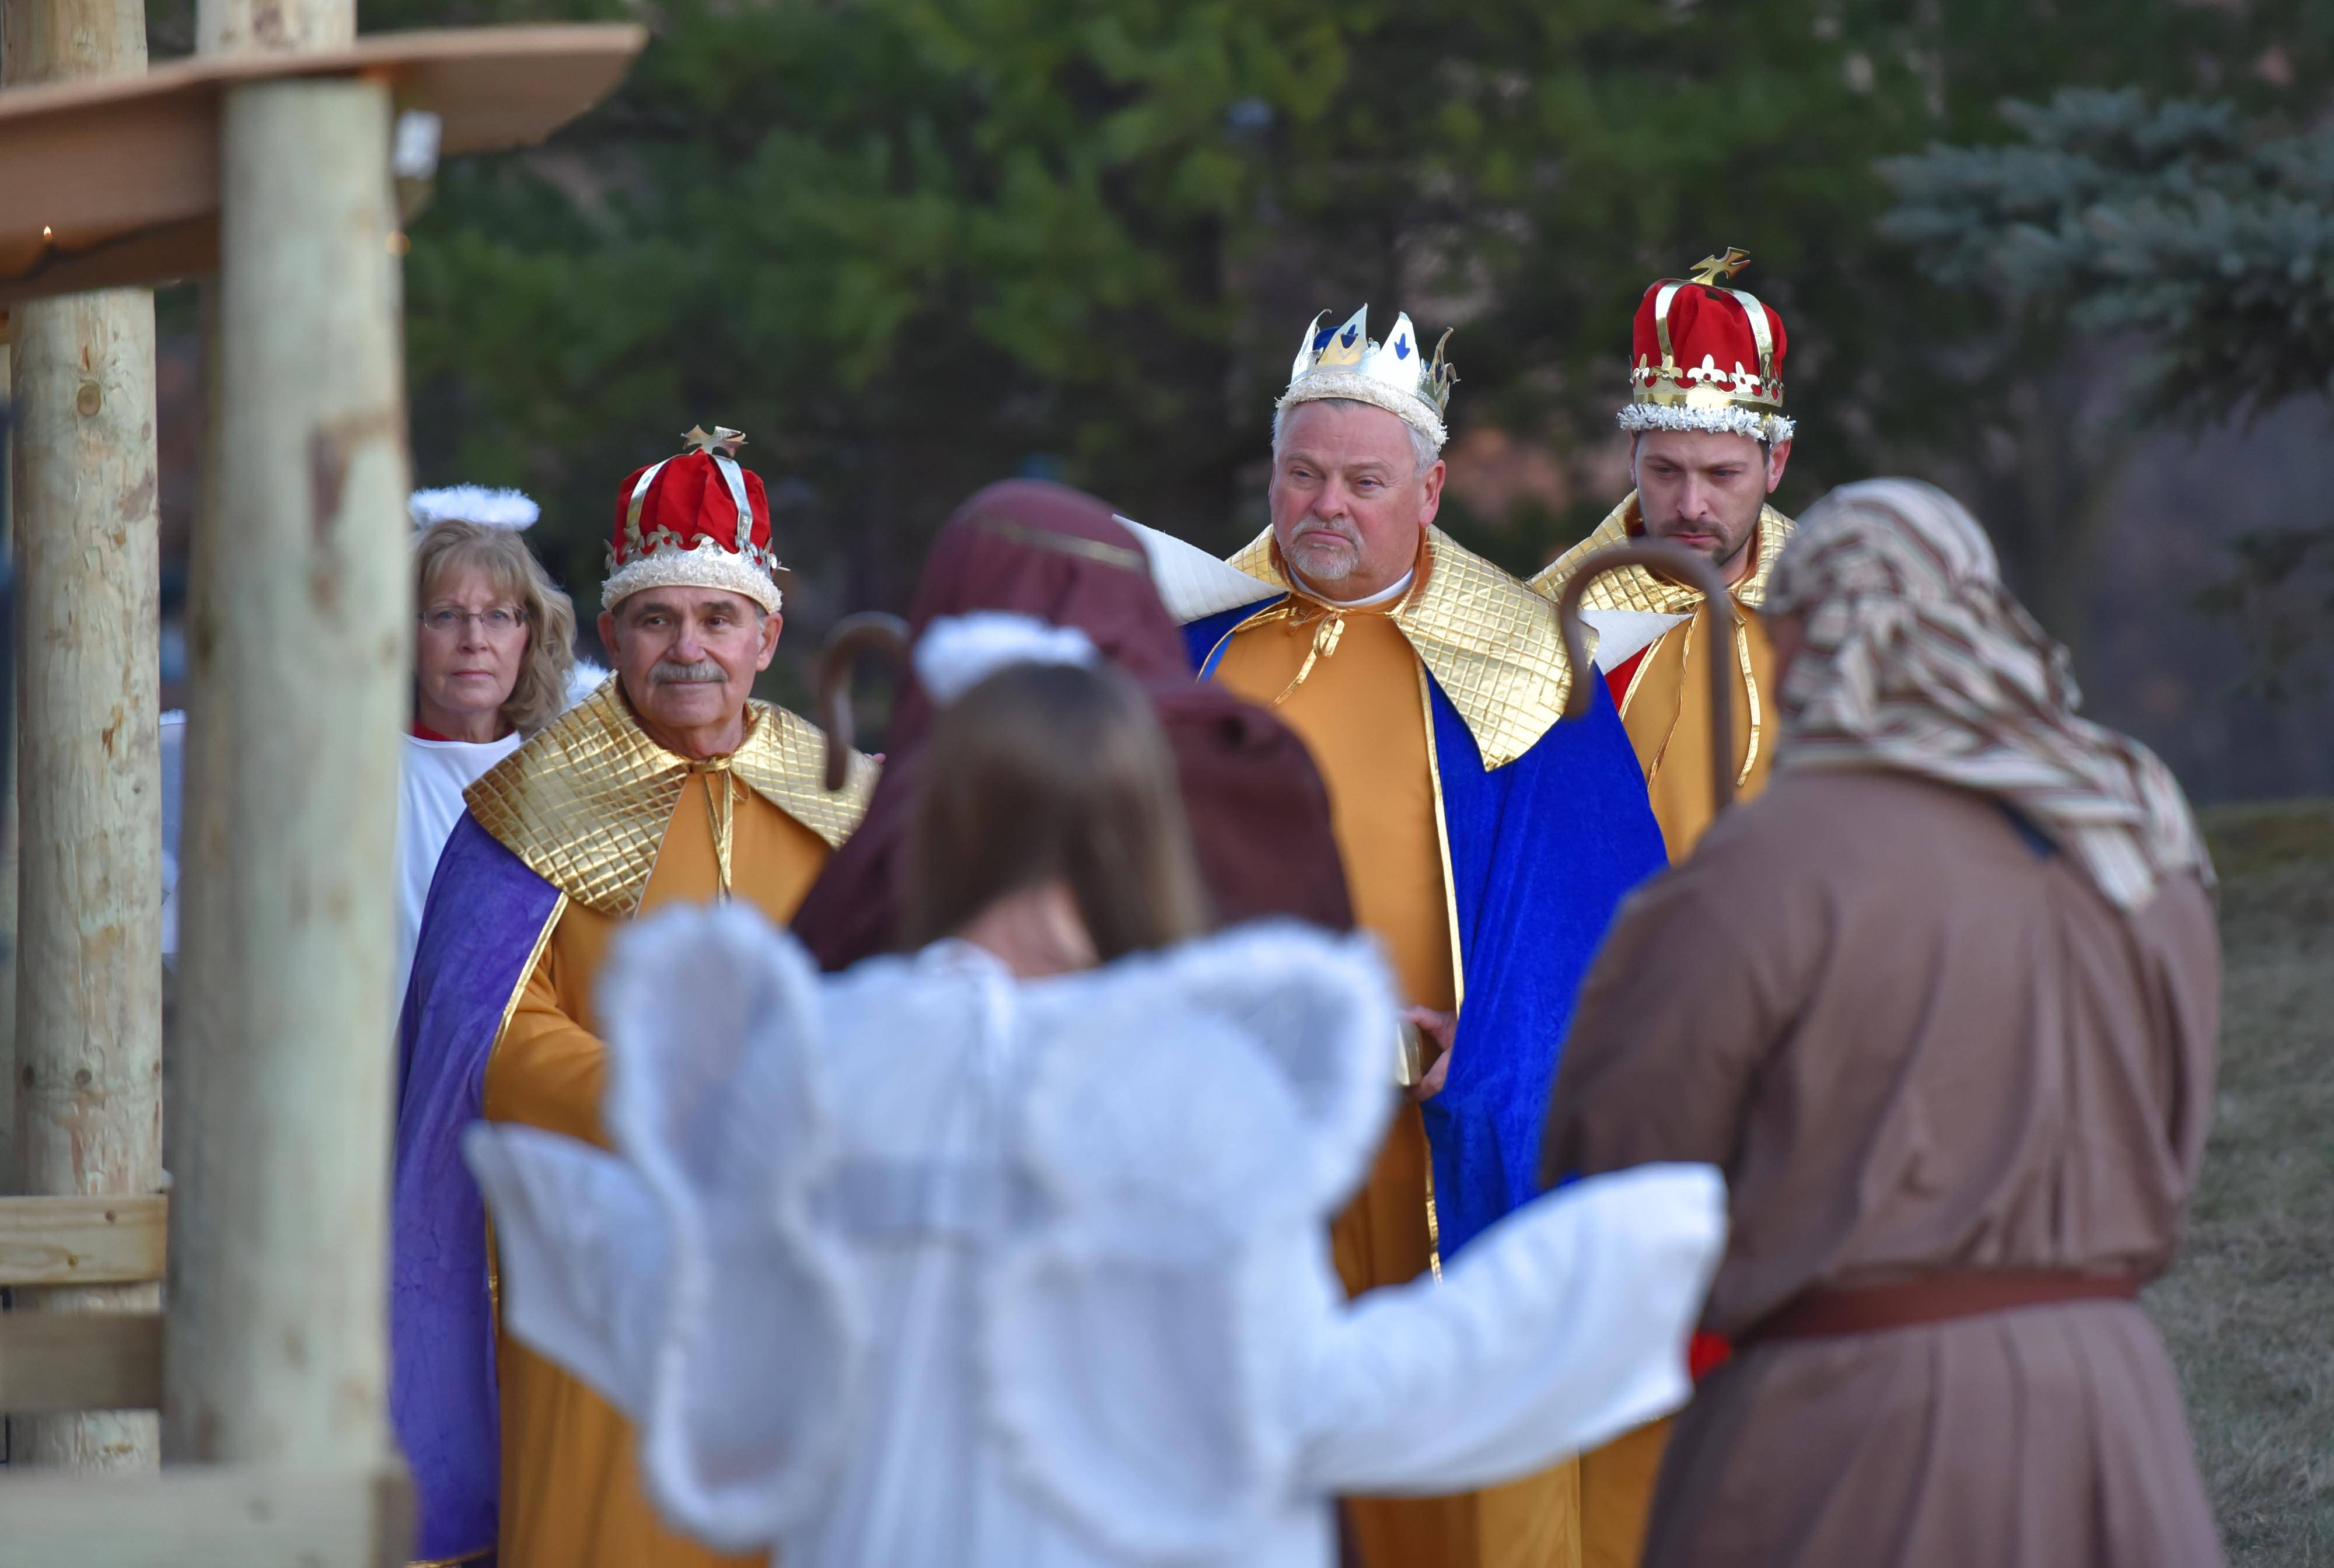 The three Magi, played by congregation members Wayne Schambach and Ken and Jeff Volkening, approach the place where Jesus was born during a live Nativity performance Sunday, at St. Paul's United Church of Christ in Elgin.